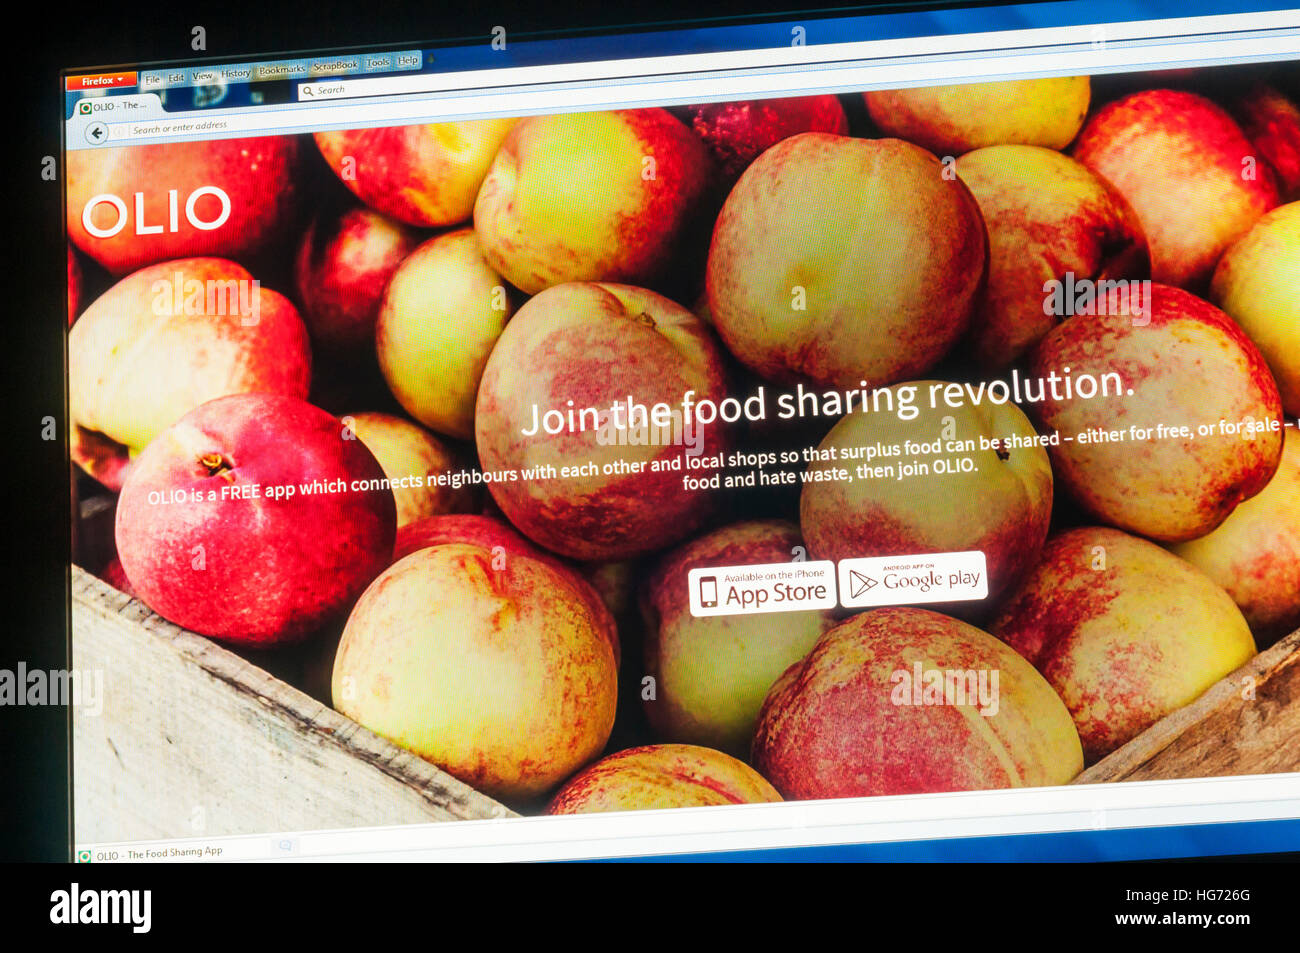 The home page of Olio, the food sharing app web site. - Stock Image